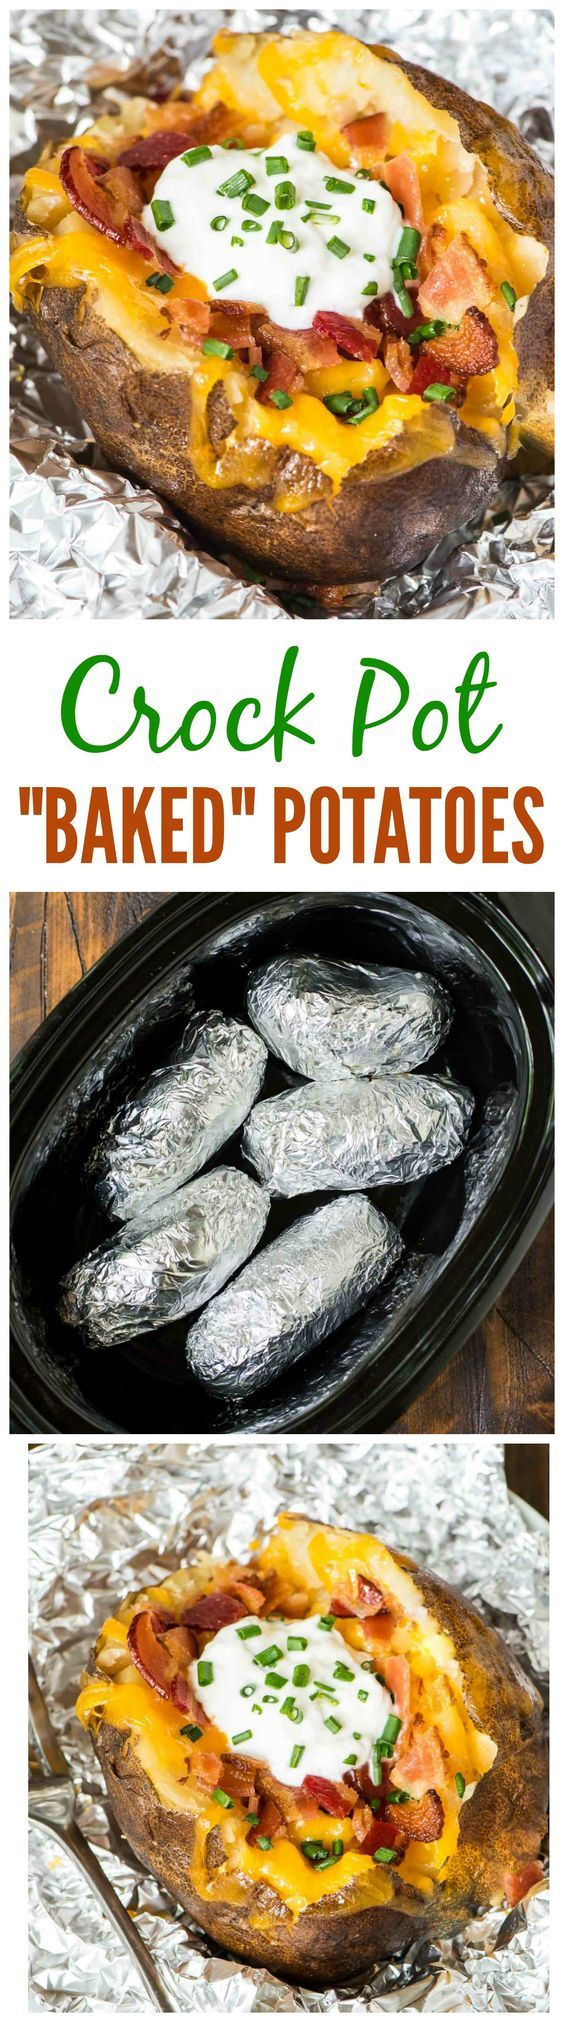 "Crock Pot Baked Potatoes recipe — the easiest way to ""bake"" a potato is in your slow cooker! Easy method with no clean up. Great for weeknight dinners or to feed a crowd. Recipe at wellplated.com @wellplated"